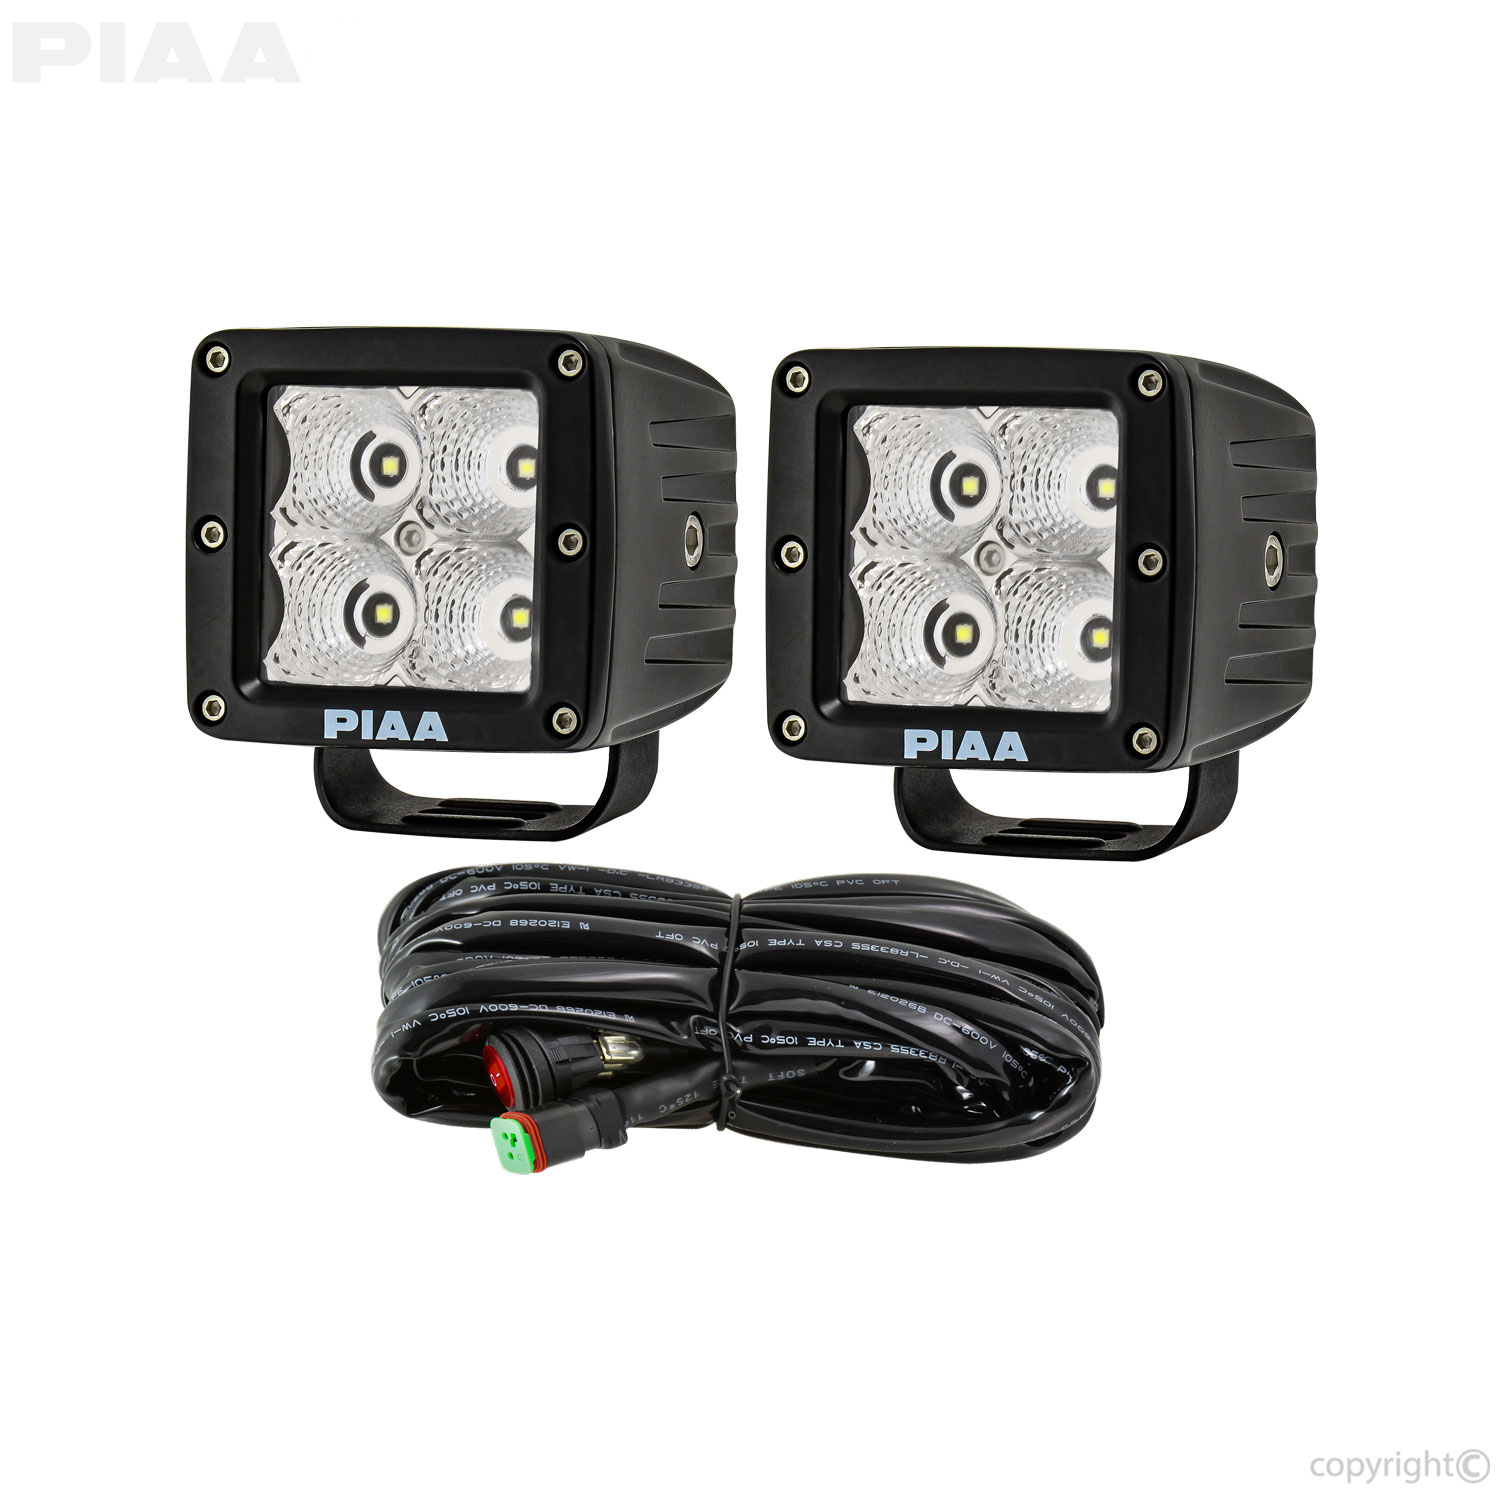 PIAA Quad LED Cube Lights Contents